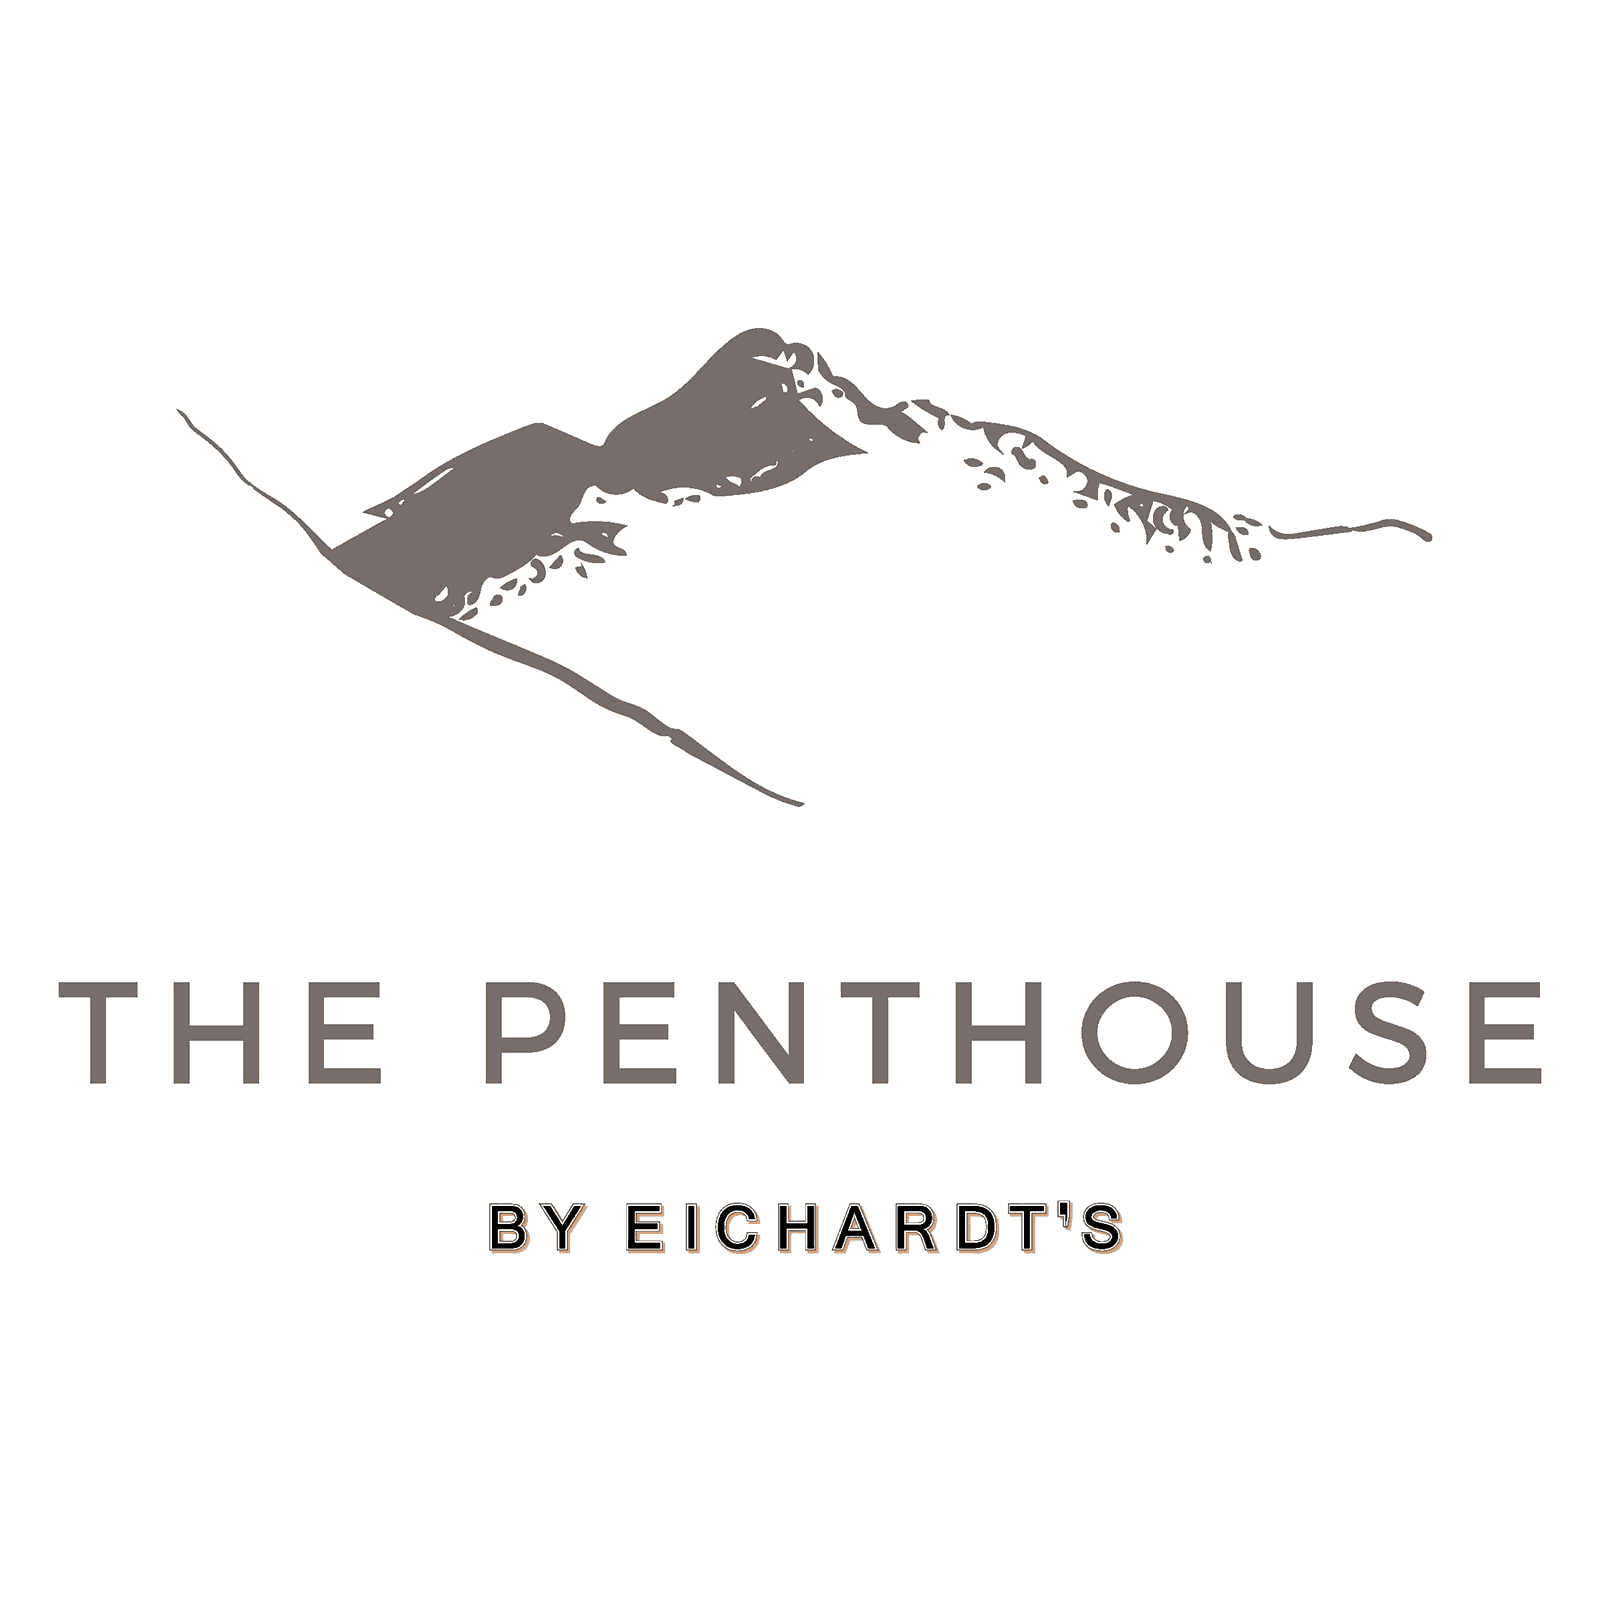 penthouse-by-eichardts